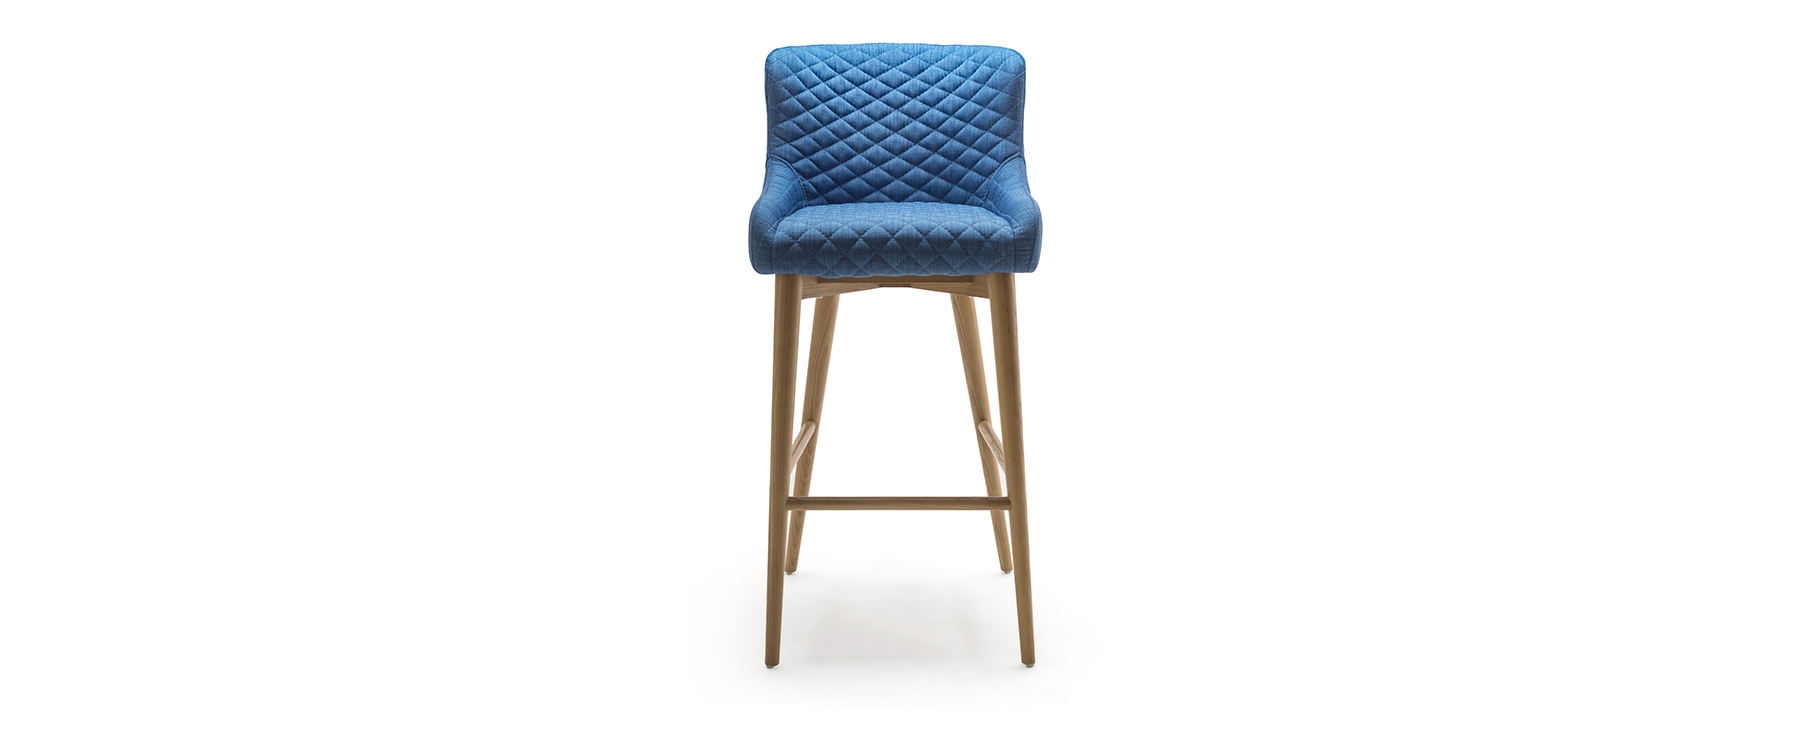 Chelsea bar stool in cobalt